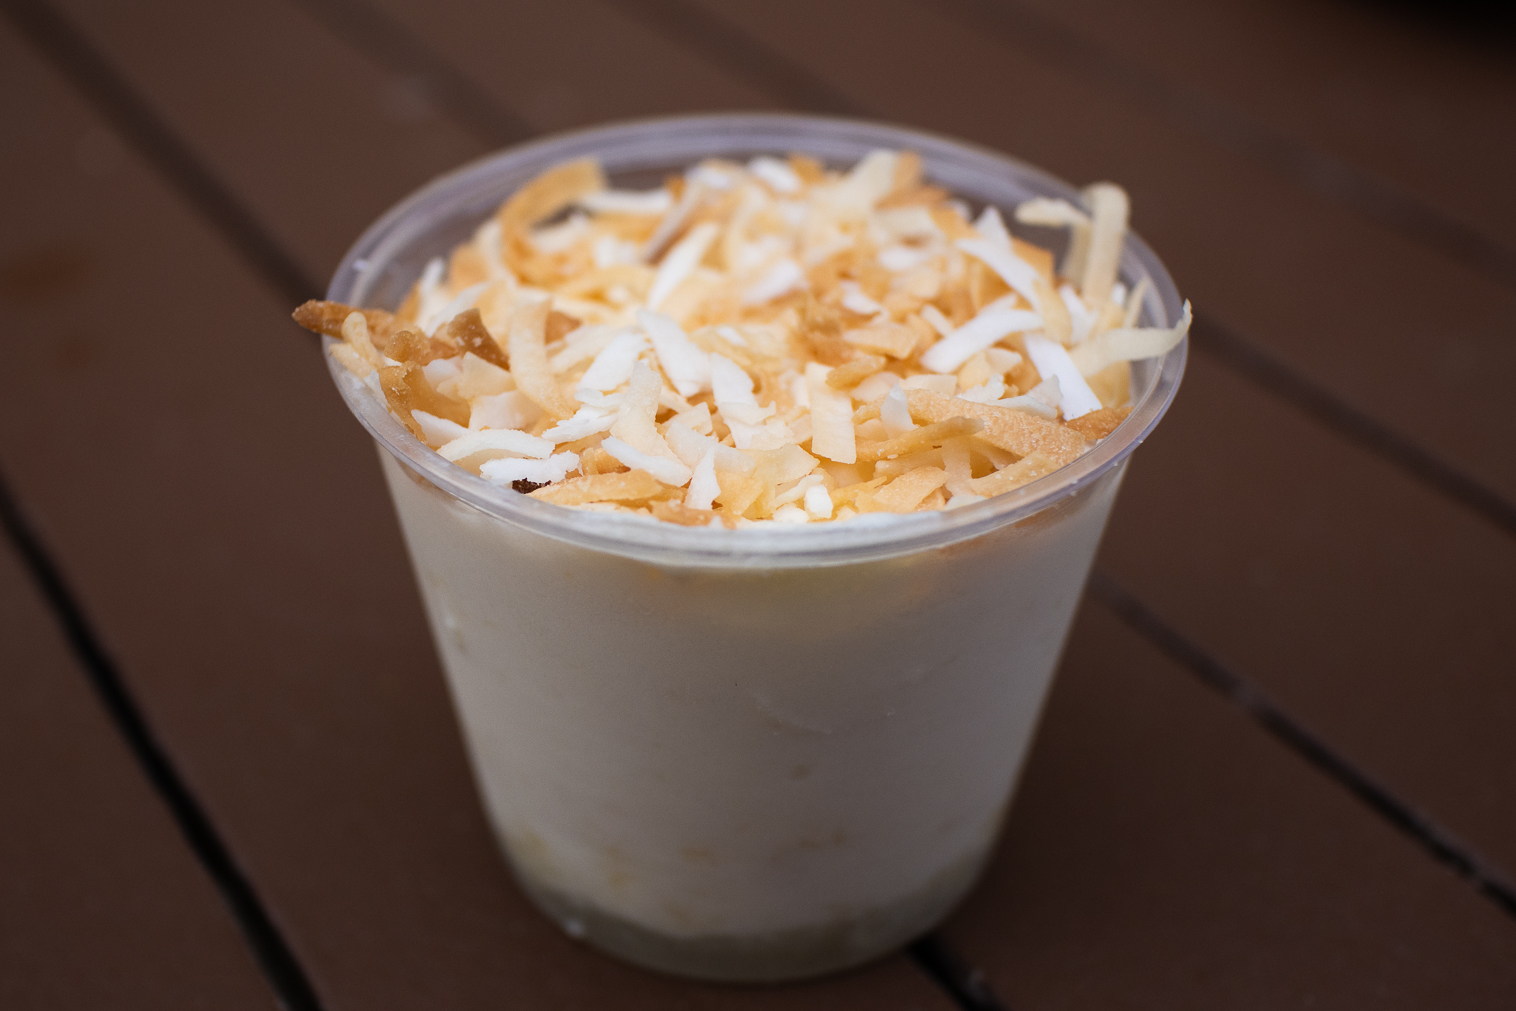 Busch Gardens Williamsburg Food and Wine Festival 2019 Pineapple Coconut Mousse